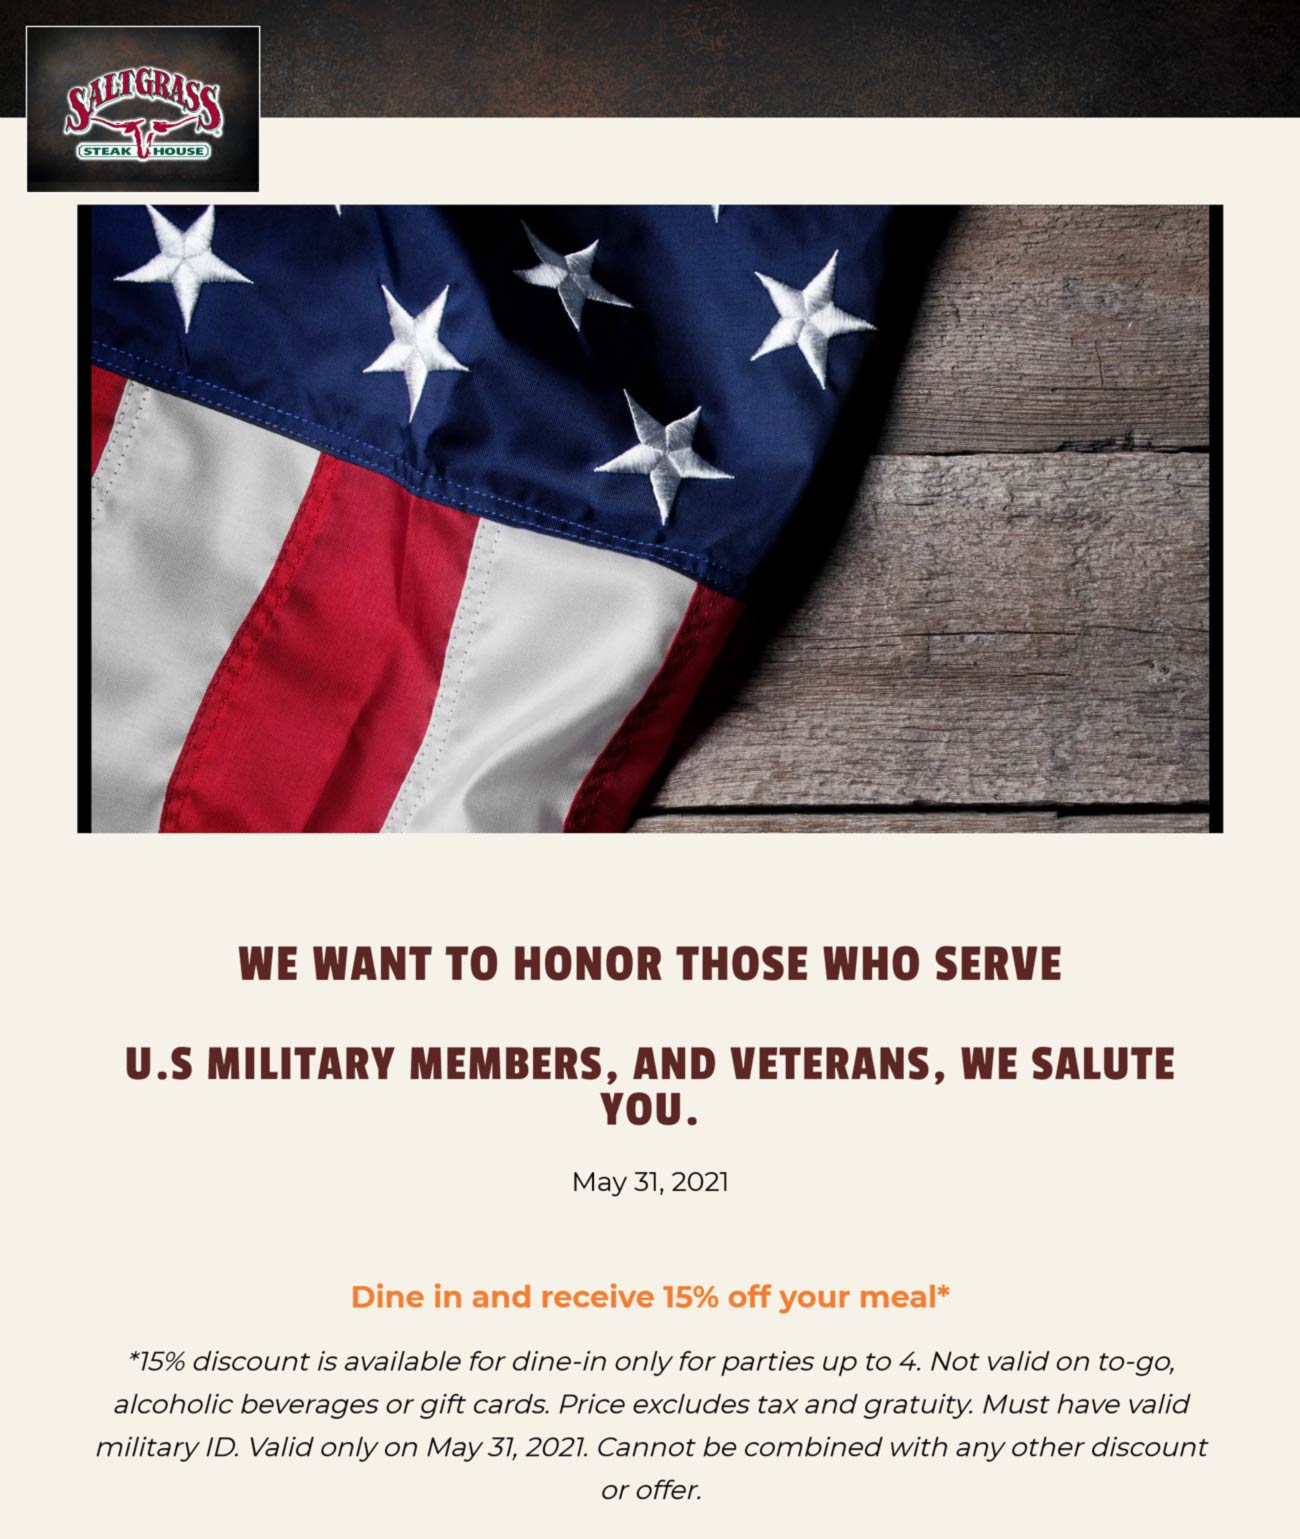 Saltgrass Steakhouse restaurants Coupon  Military score 15% off their table Monday at Saltgrass Steakhouse restaurants #saltgrasssteakhouse